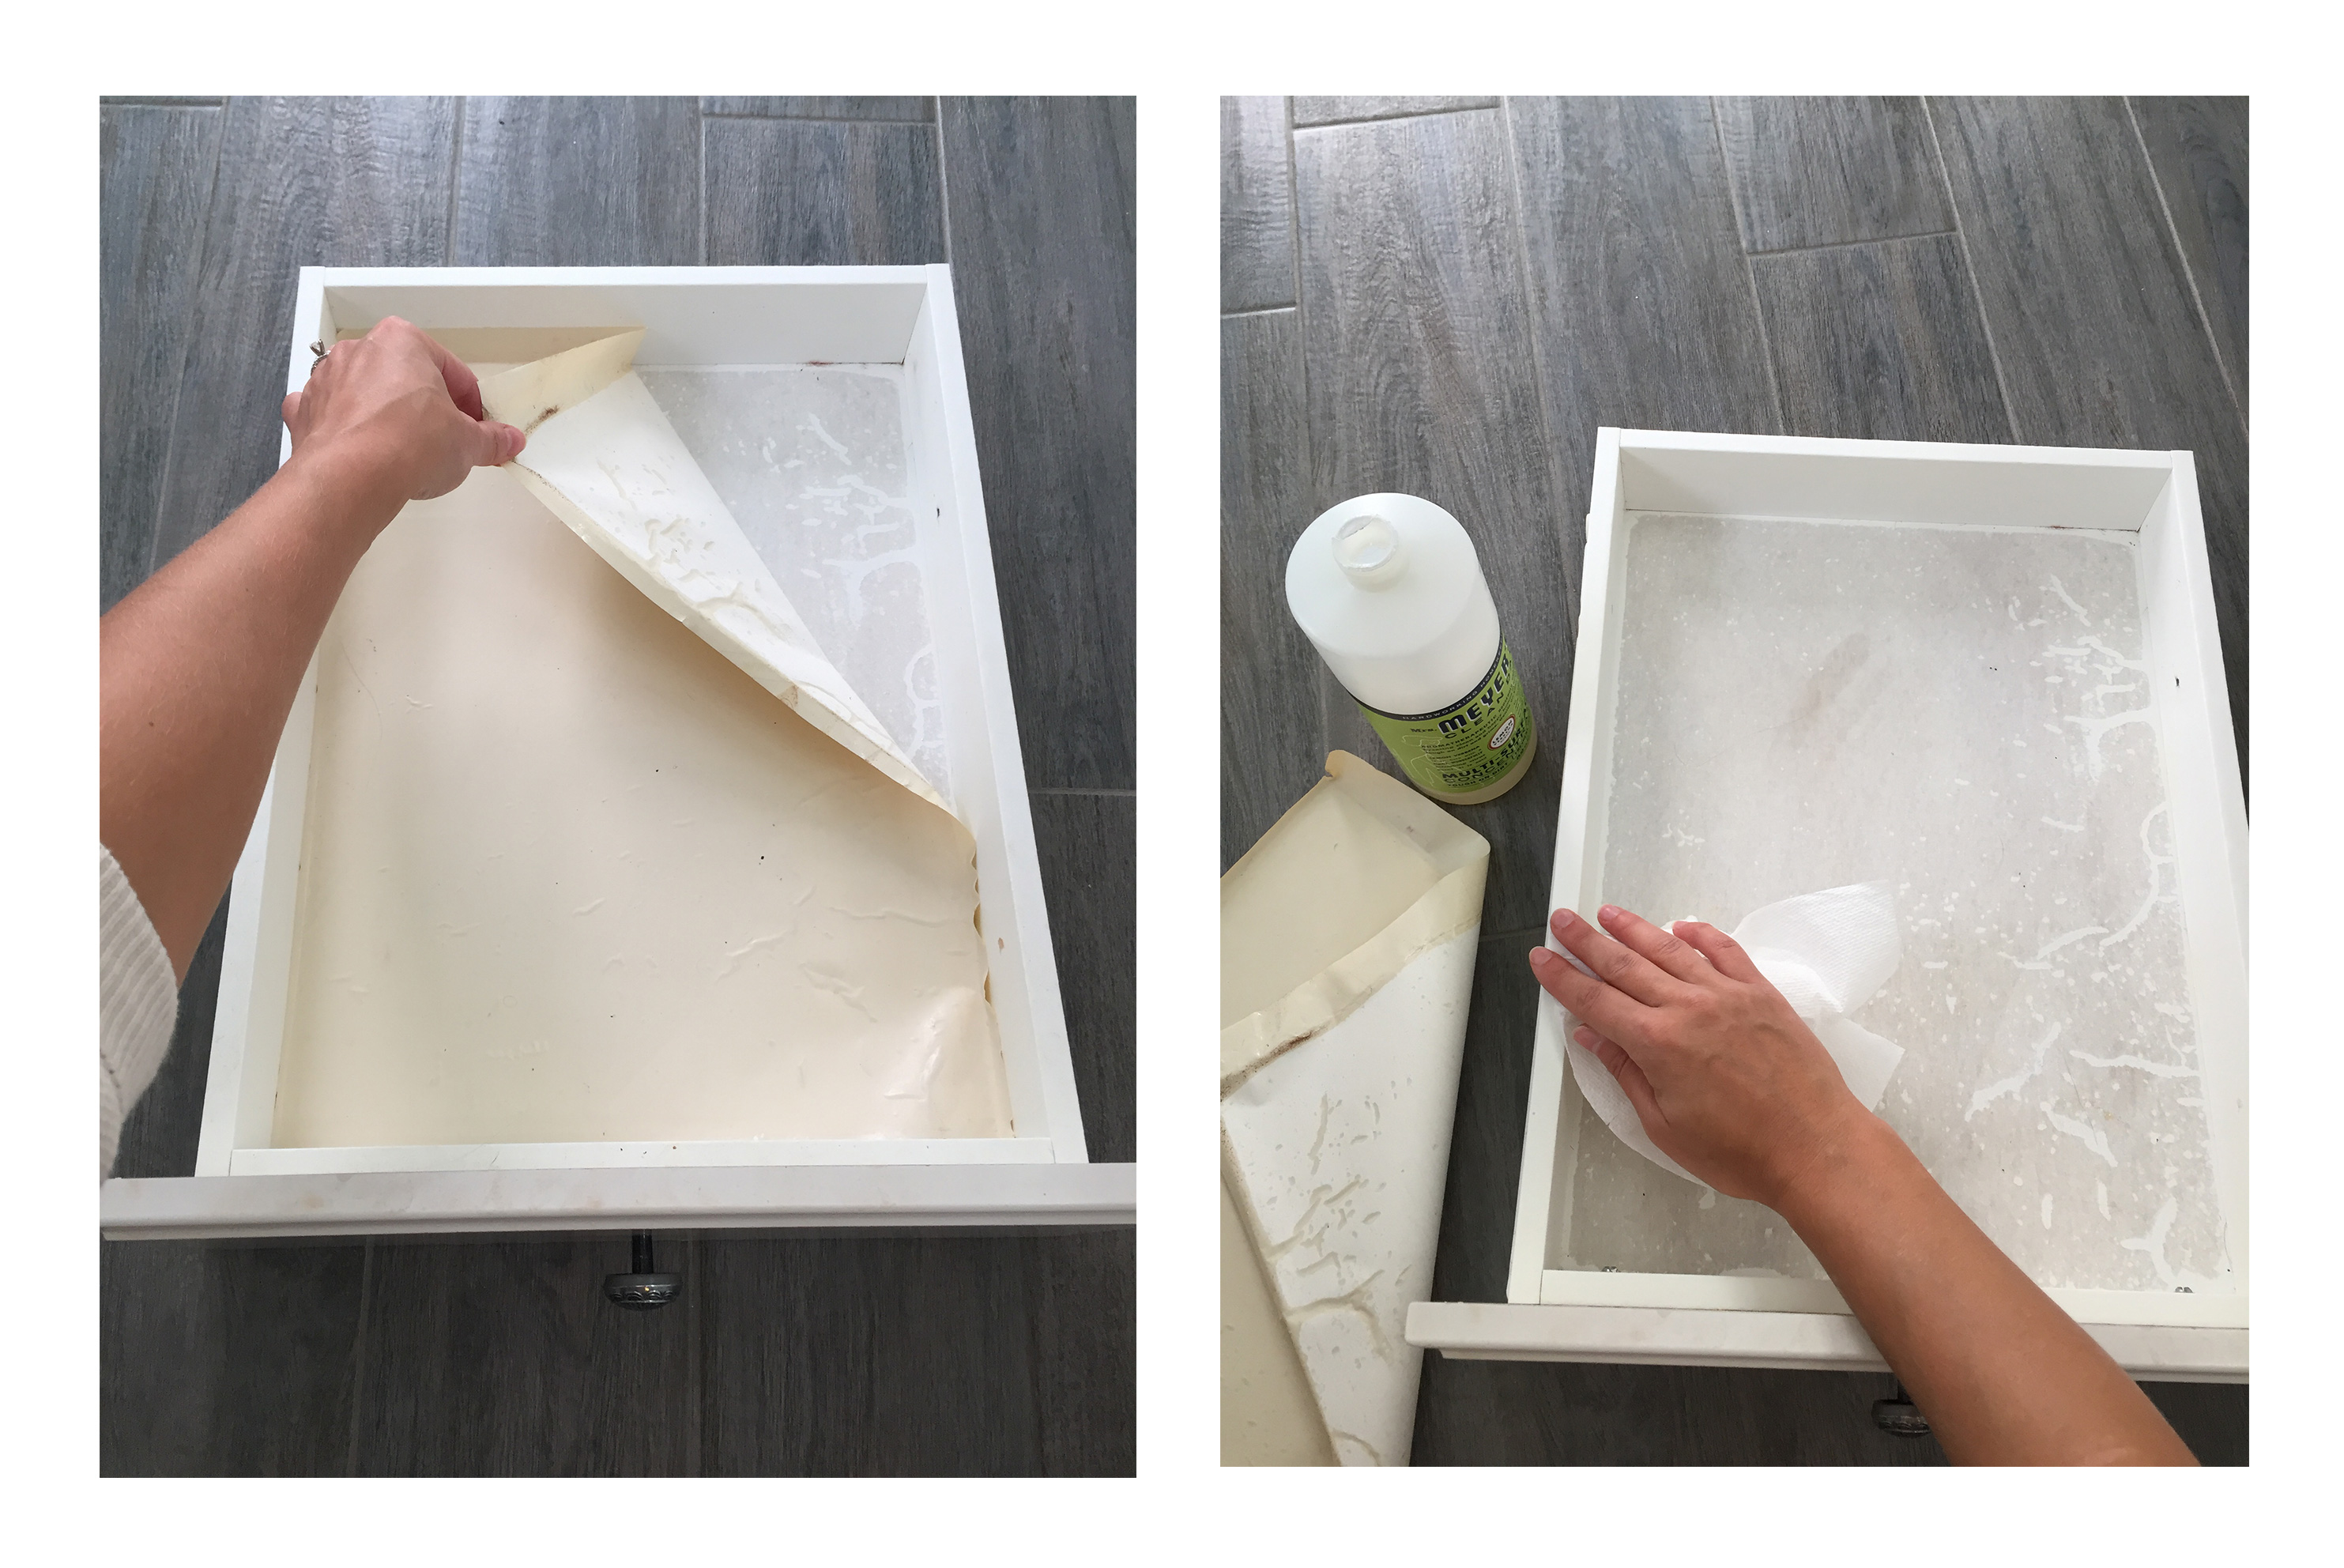 Remove liner from drawers